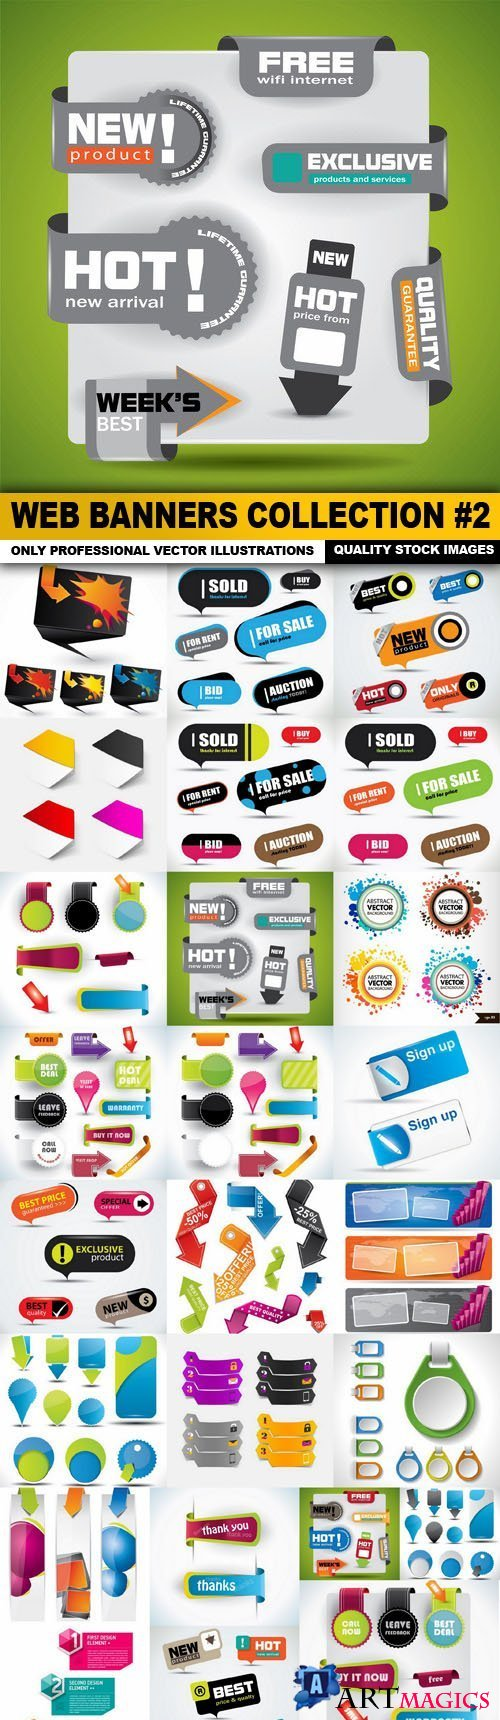 Web Banners Collection 2 - 25 Verctor